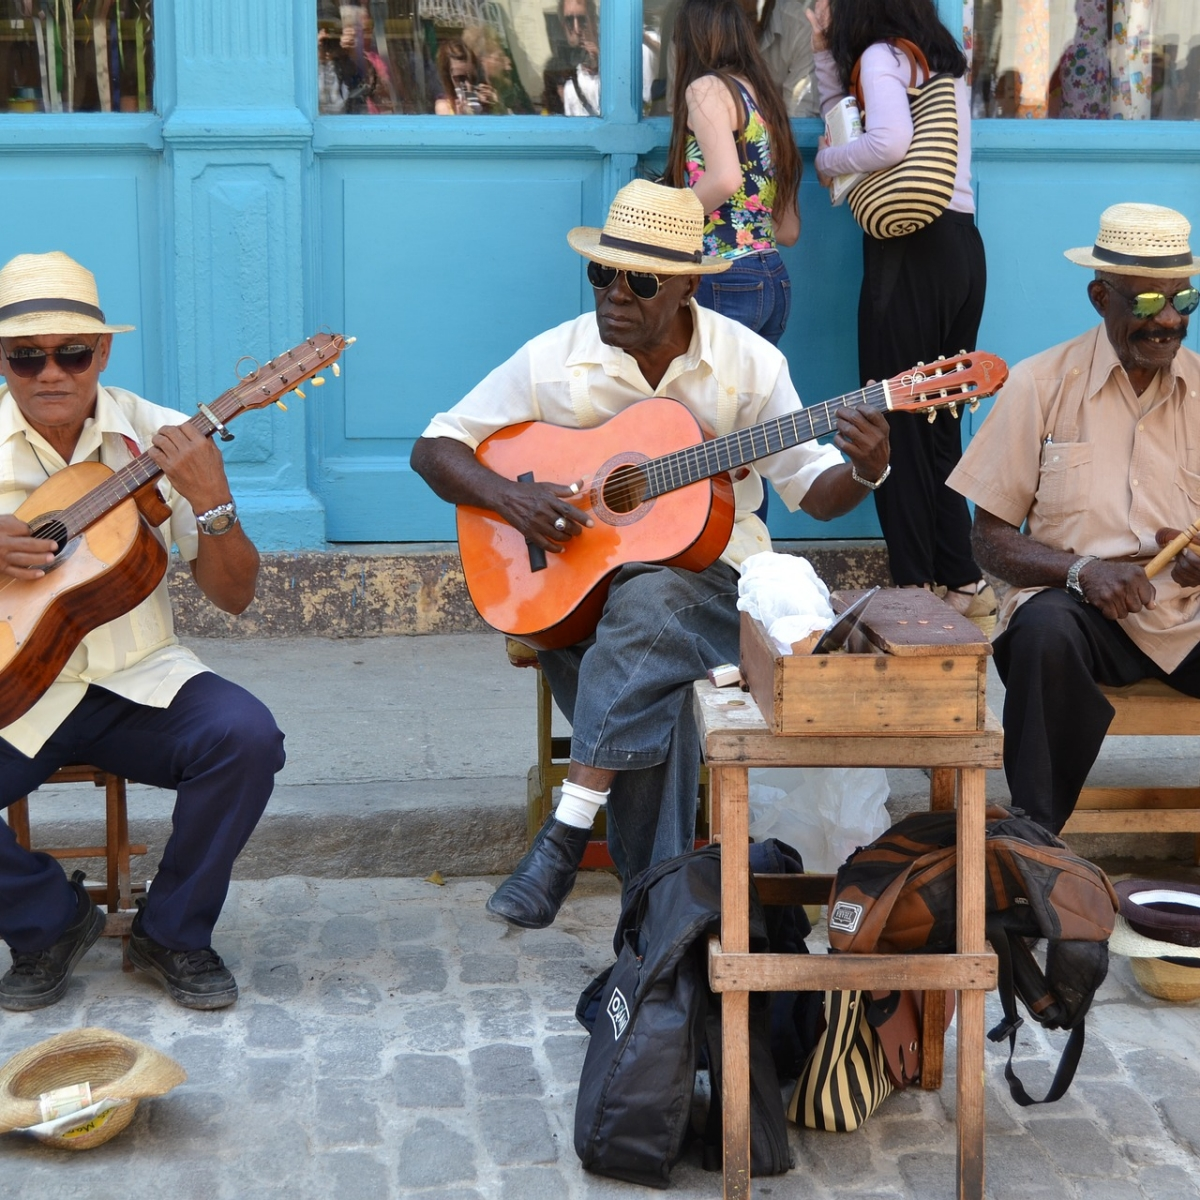 Guitarists playing on the street in Havana, Cuba